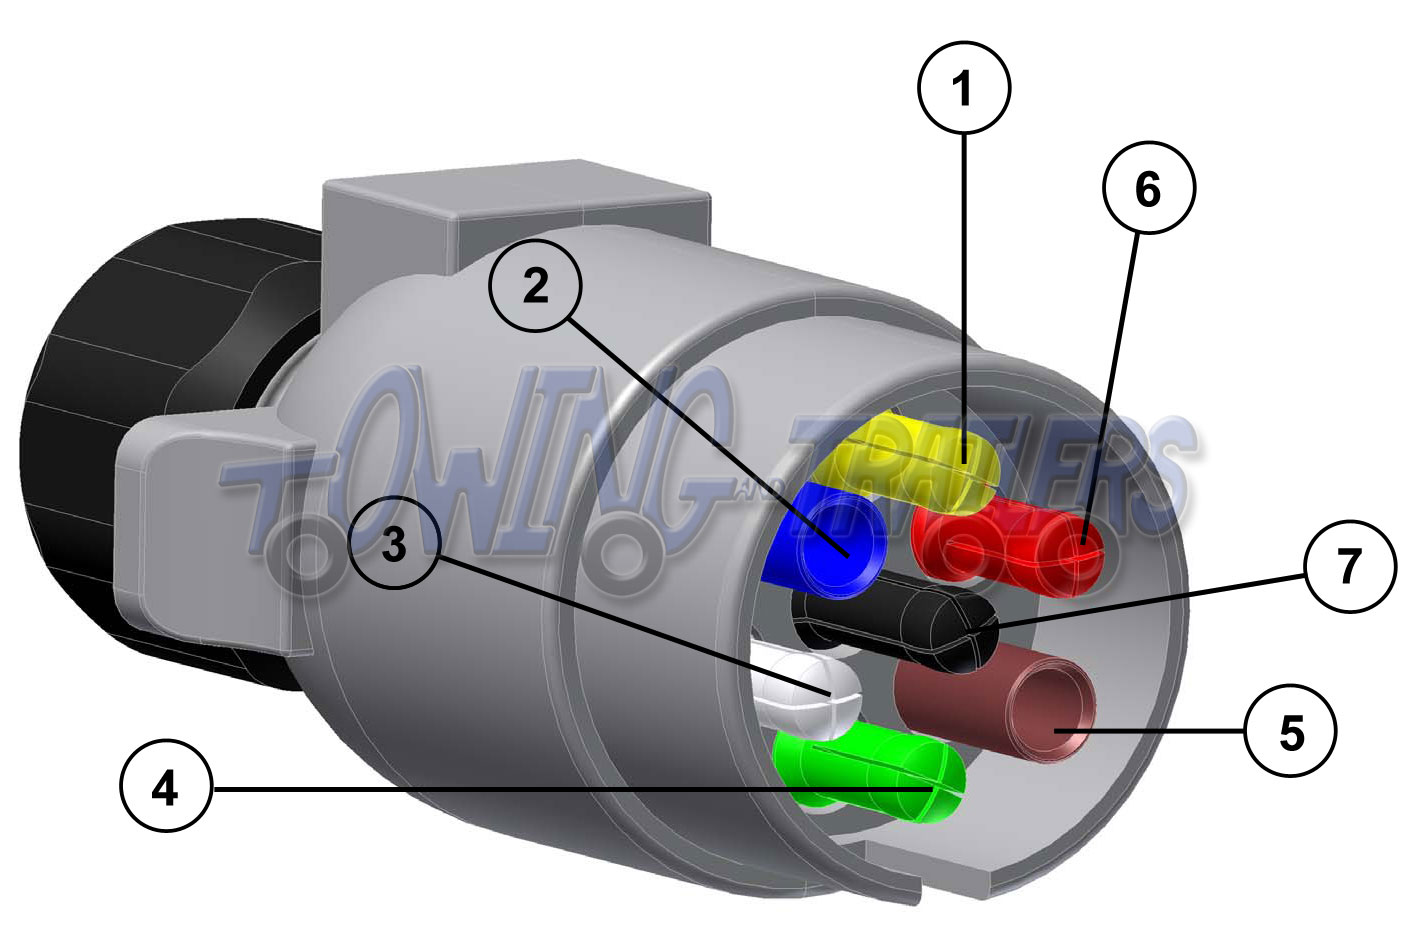 6 pin to 7 trailer adapter wiring diagram wire light switch electrics towing and trailers ltd for 12s plug